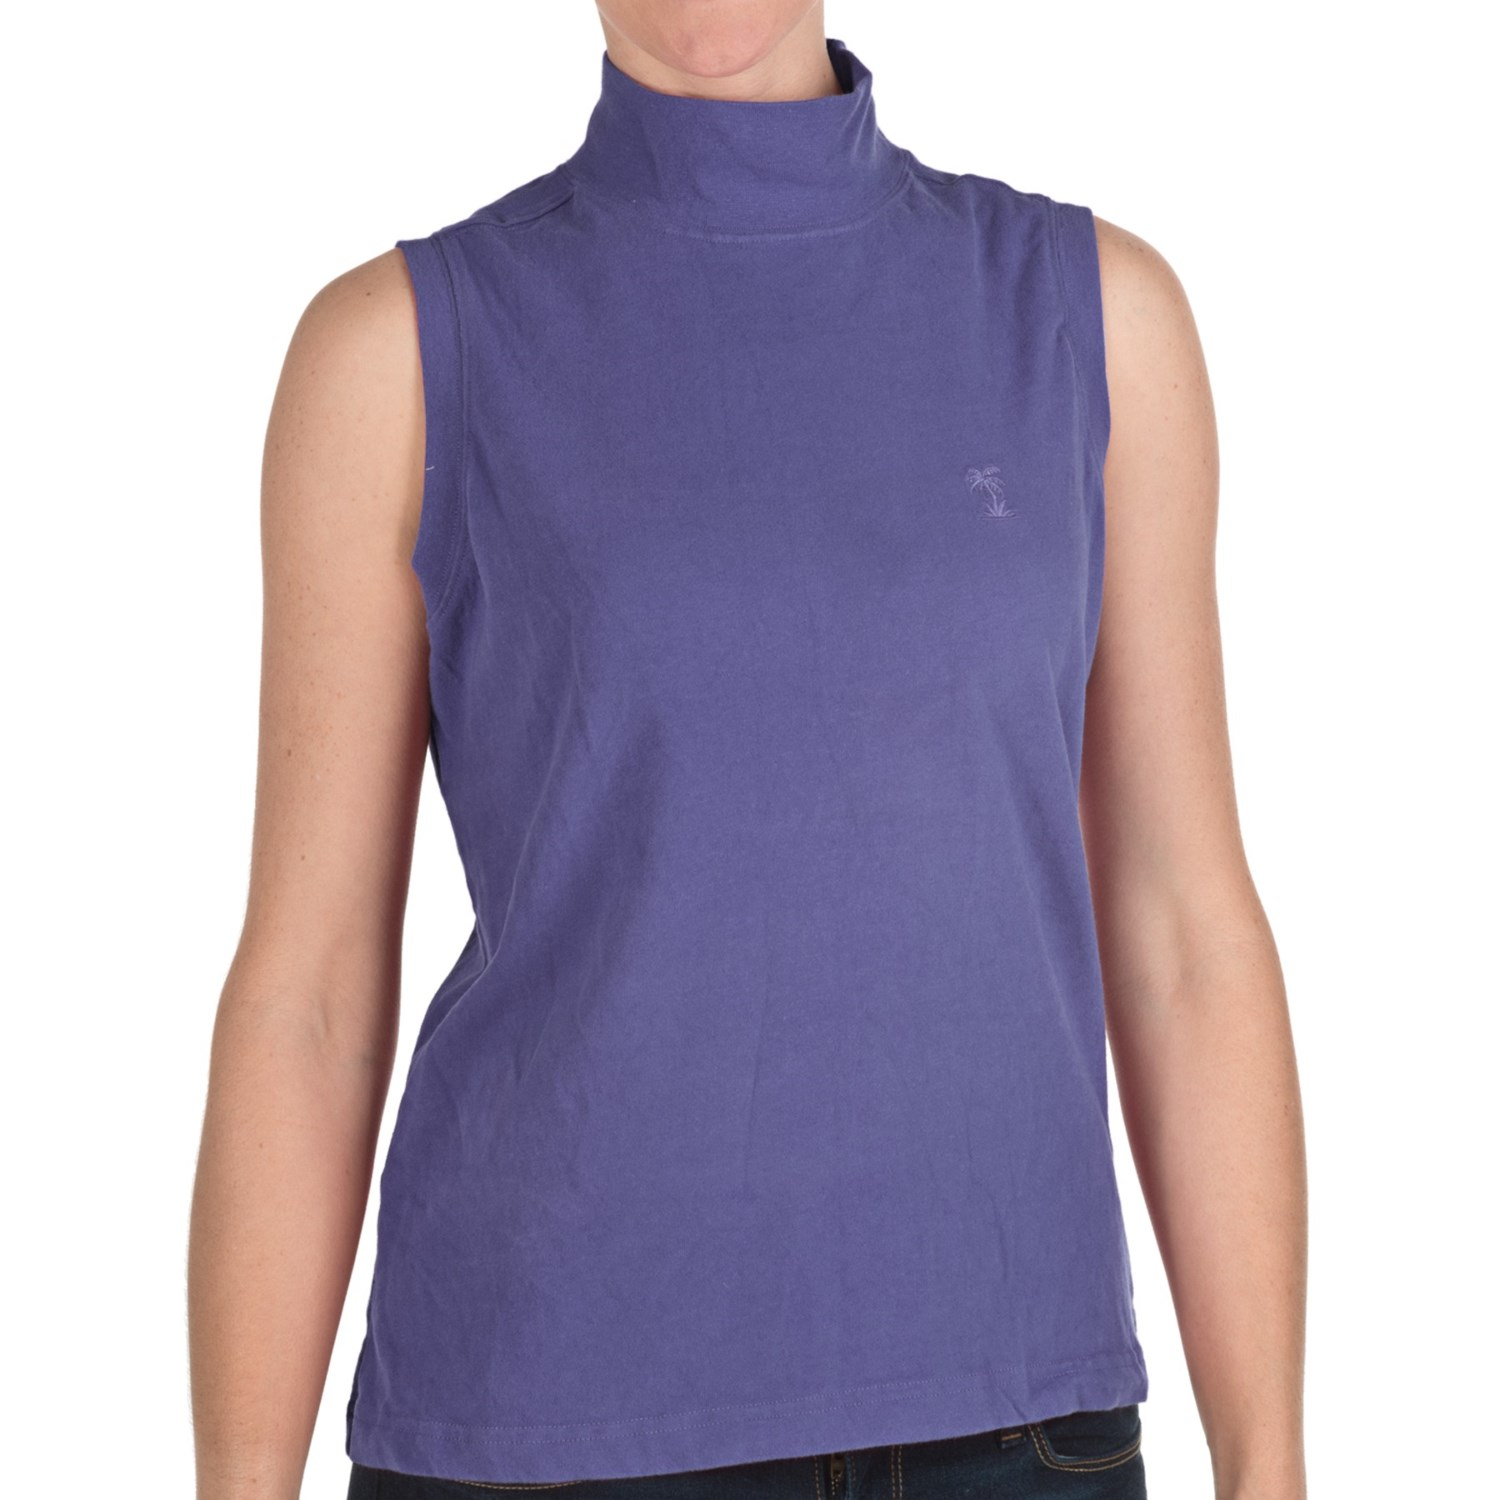 Nina capri mock neck shirt sleeveless for women save 60 for Sleeveless mock turtleneck shirts